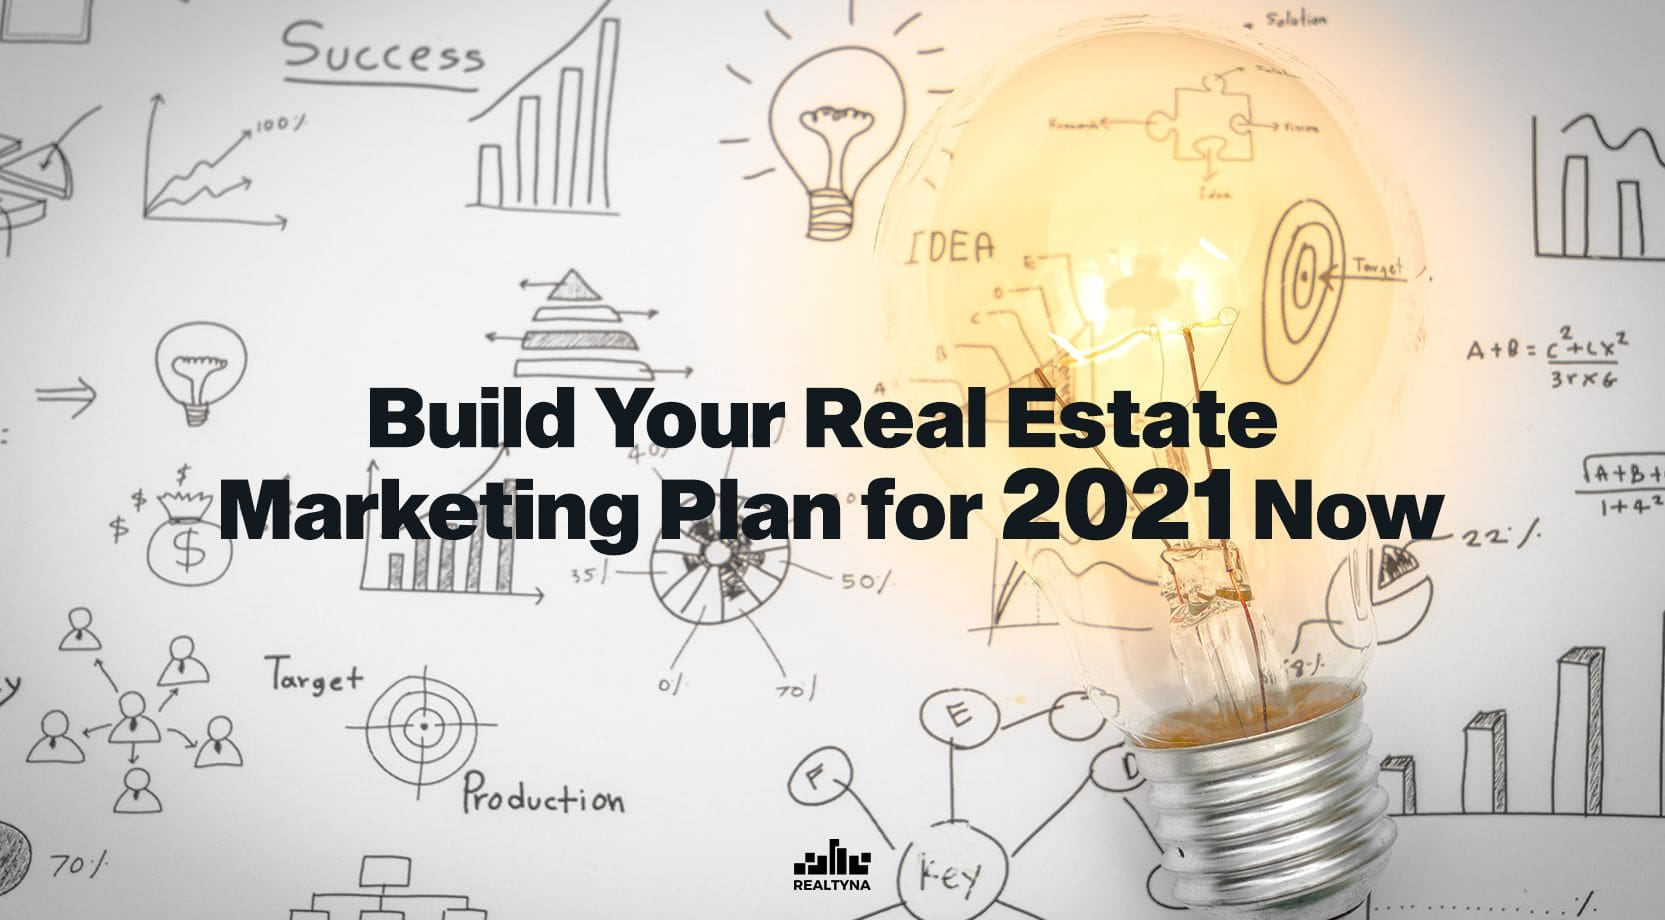 Build Your Real Estate Marketing Plan for 2021 Now